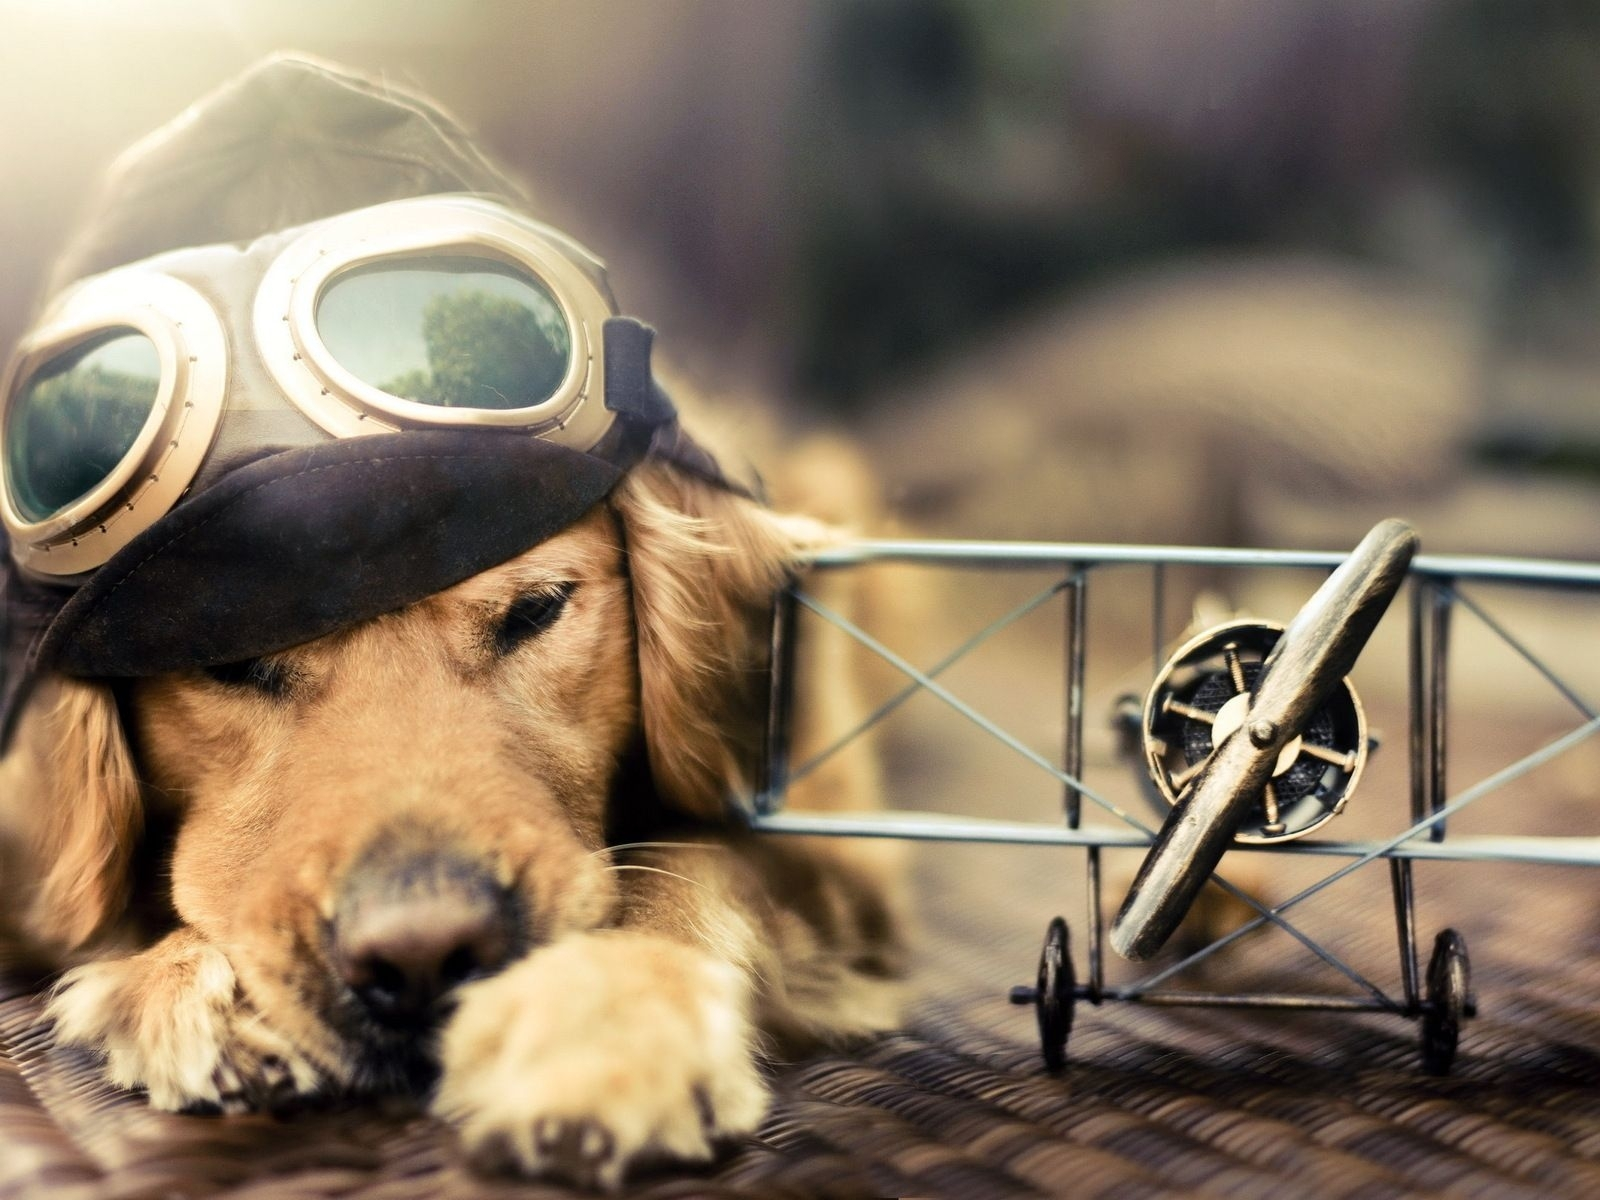 funny dog wallpapers for desktop - wallpapersafari | wallpapers